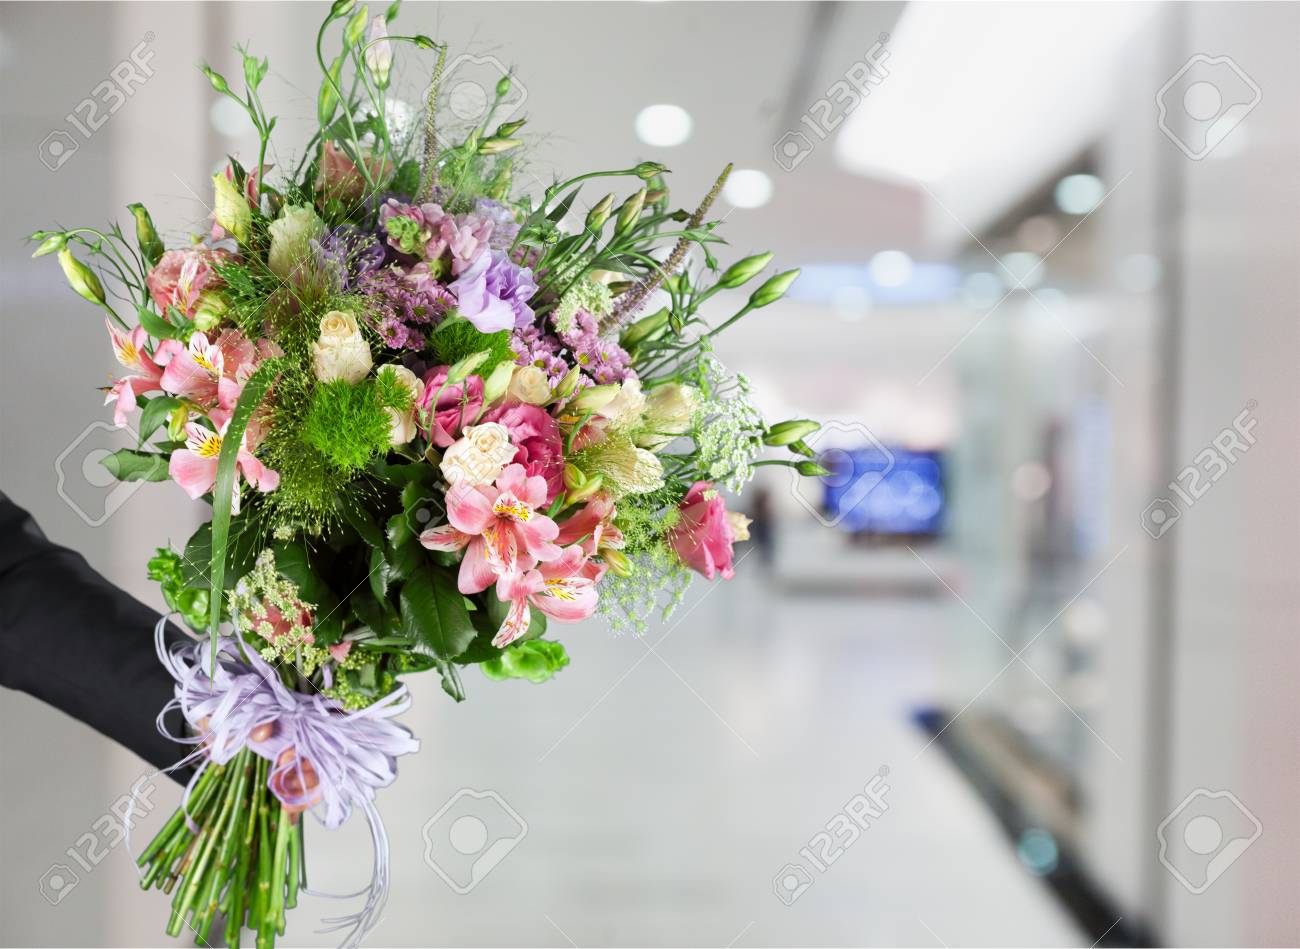 hand giving a flower bouquet stock photo picture and royalty free